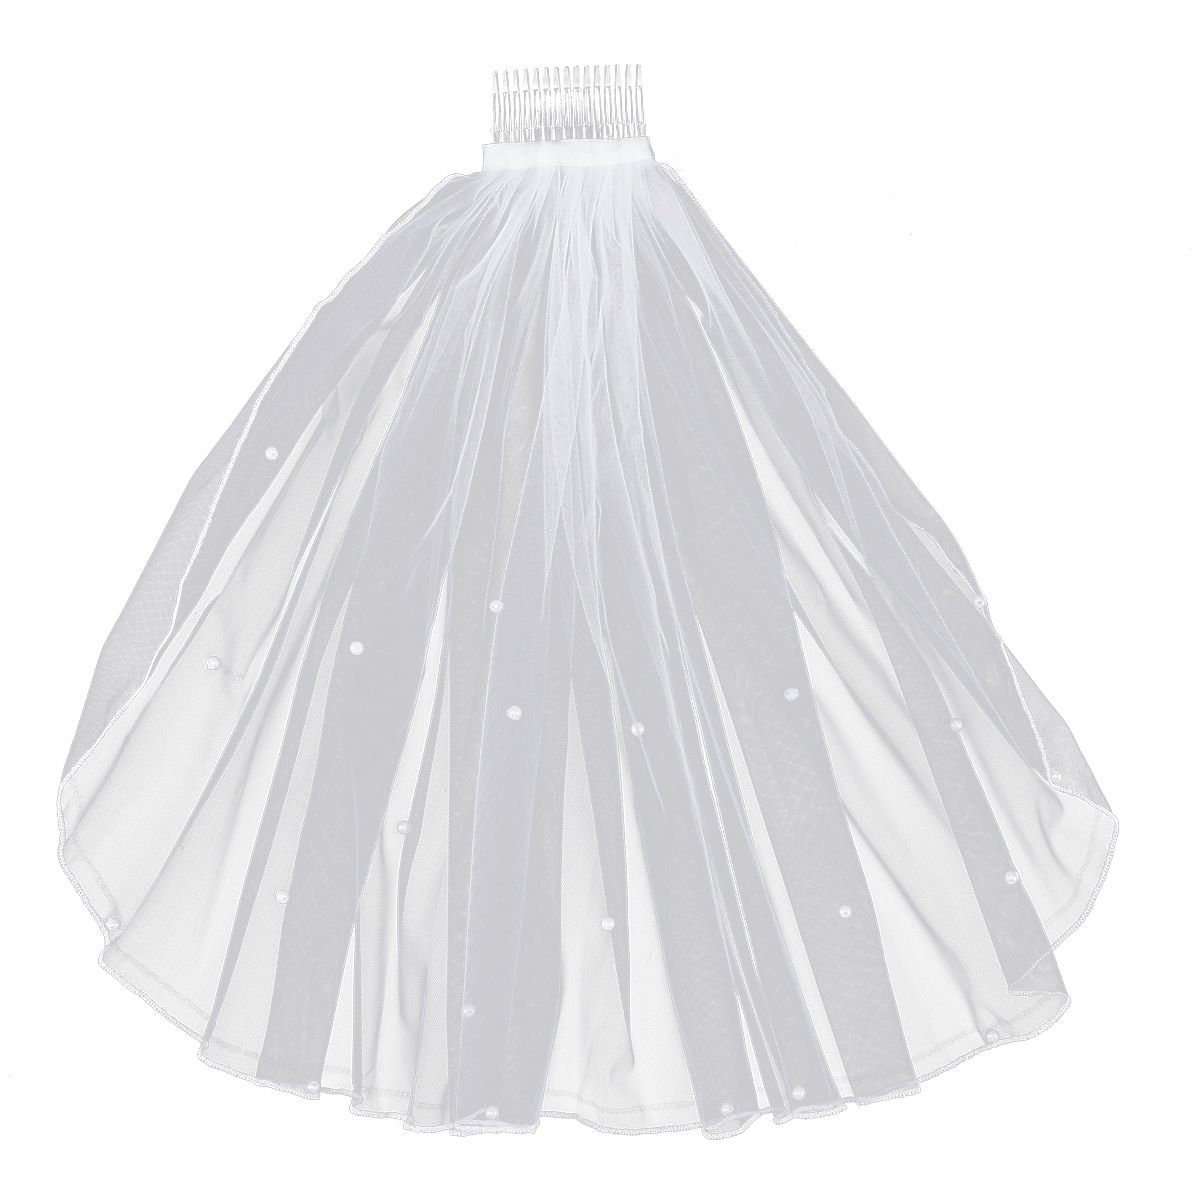 1pc Wedding Veil Chapel Cathedral White Elegent Short Pearl Veil Lace Bridal Veils Wedding Veil With Hair Comb